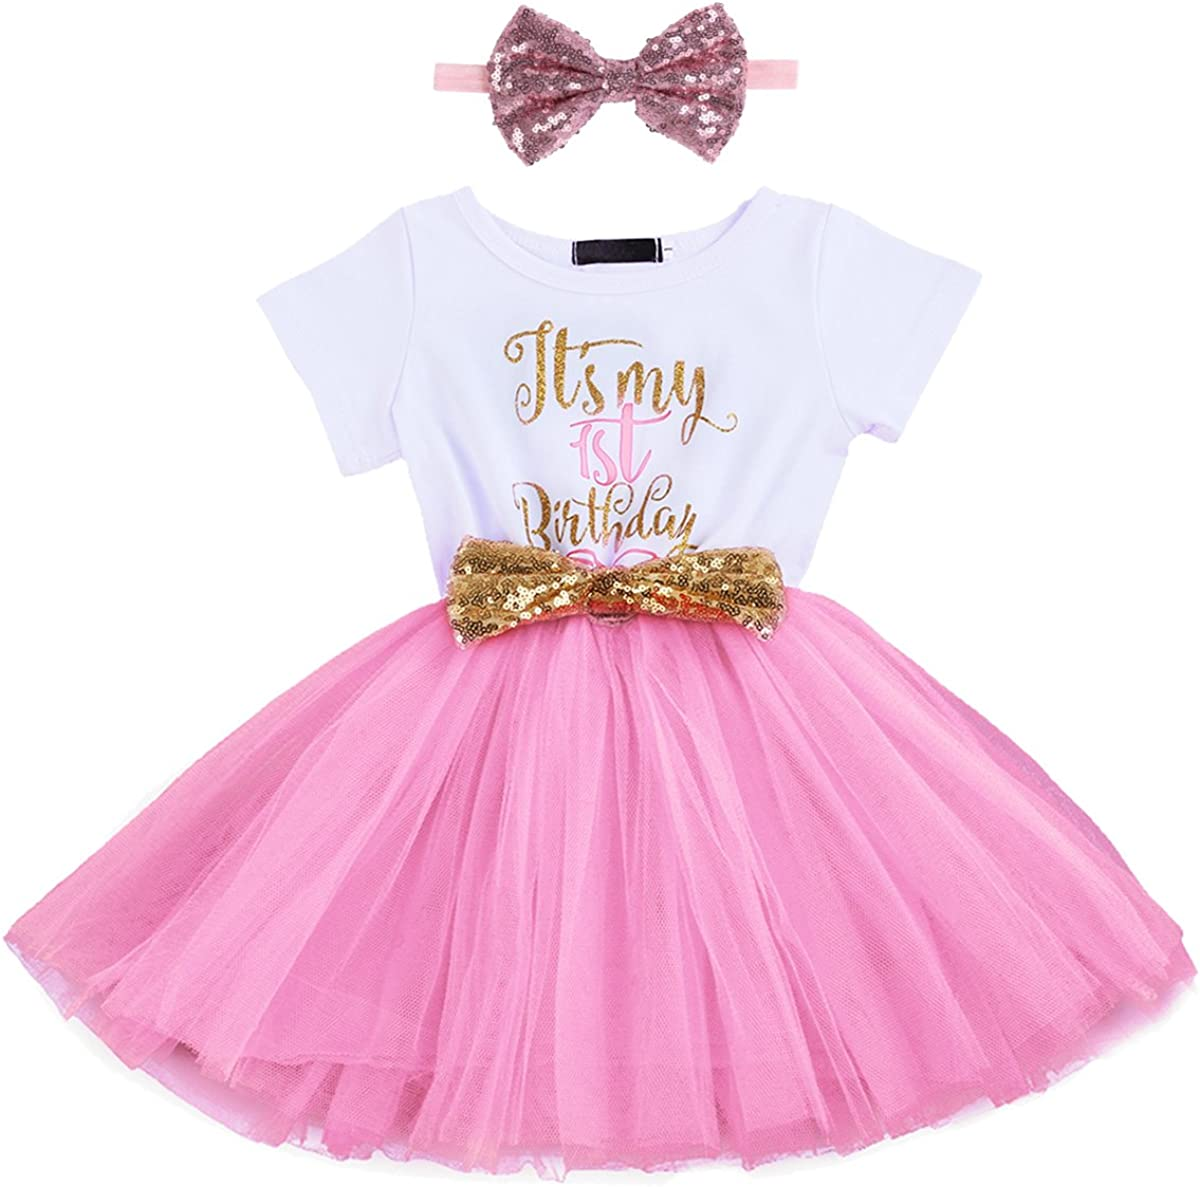 IBTOM CASTLE Its My 1st Birthday Outfits Cake Smash Princess Dress for Baby Little Girl Newborn Party Gown Set